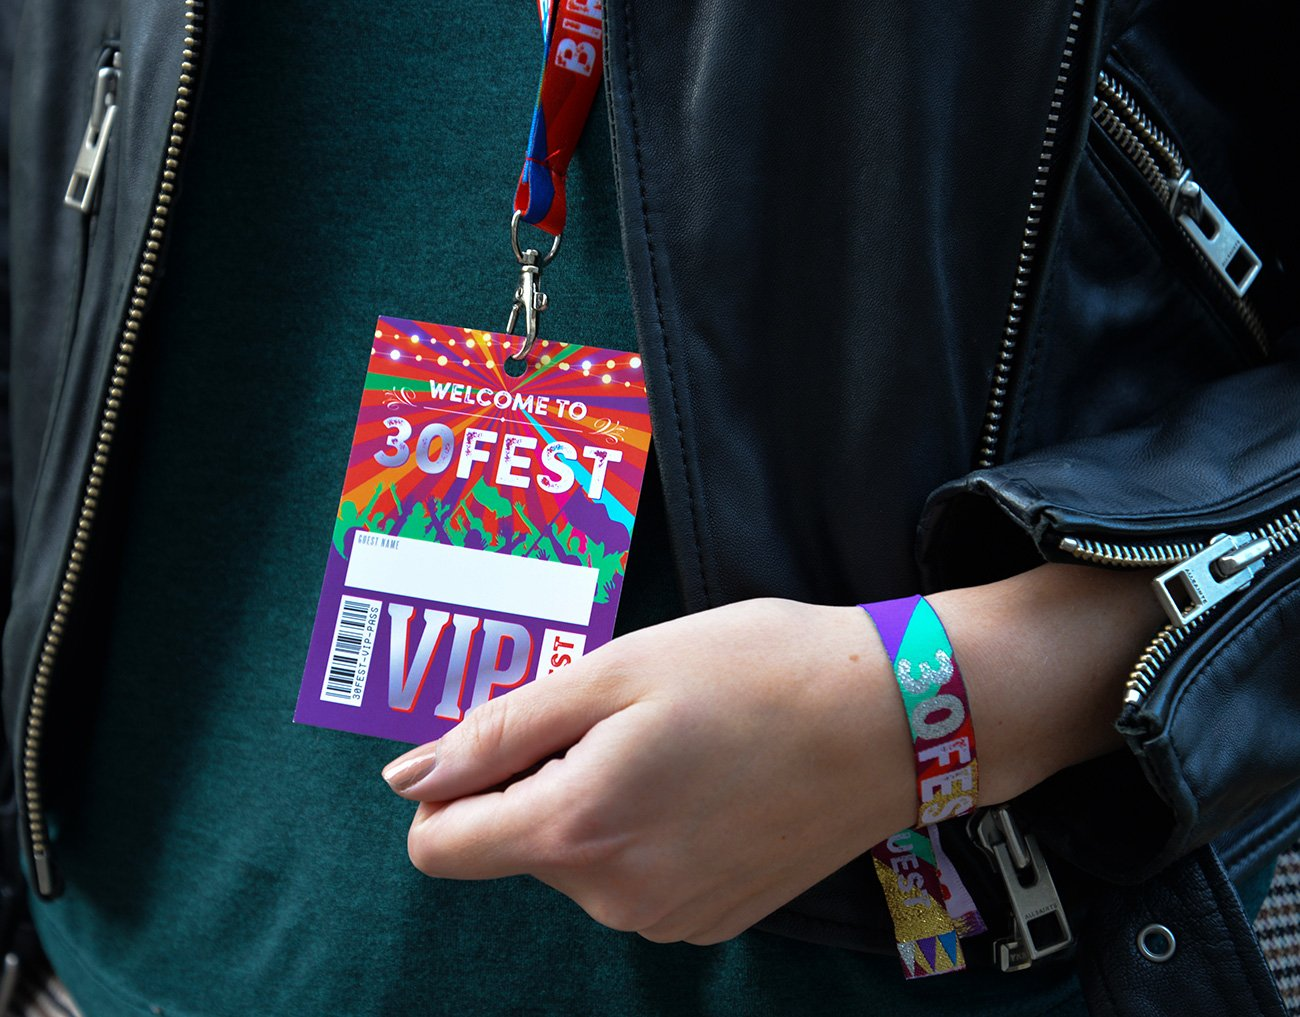 30fest 30th thirtieth festival birthday party favours lanyard wristband